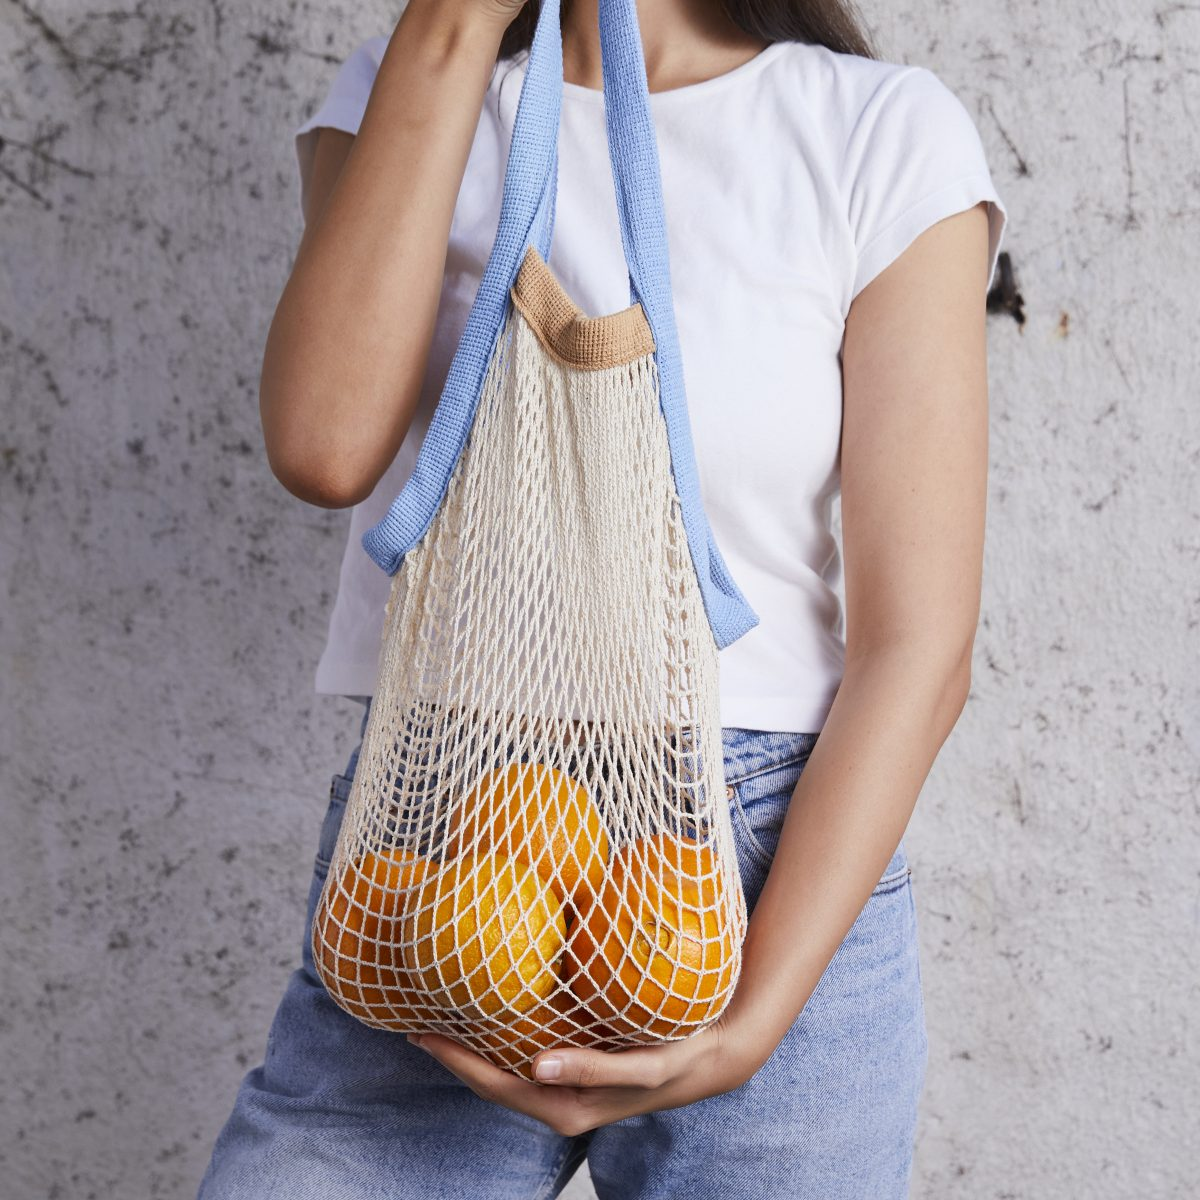 Woman holding a net bag with blue and nude colored straps filled with oranges